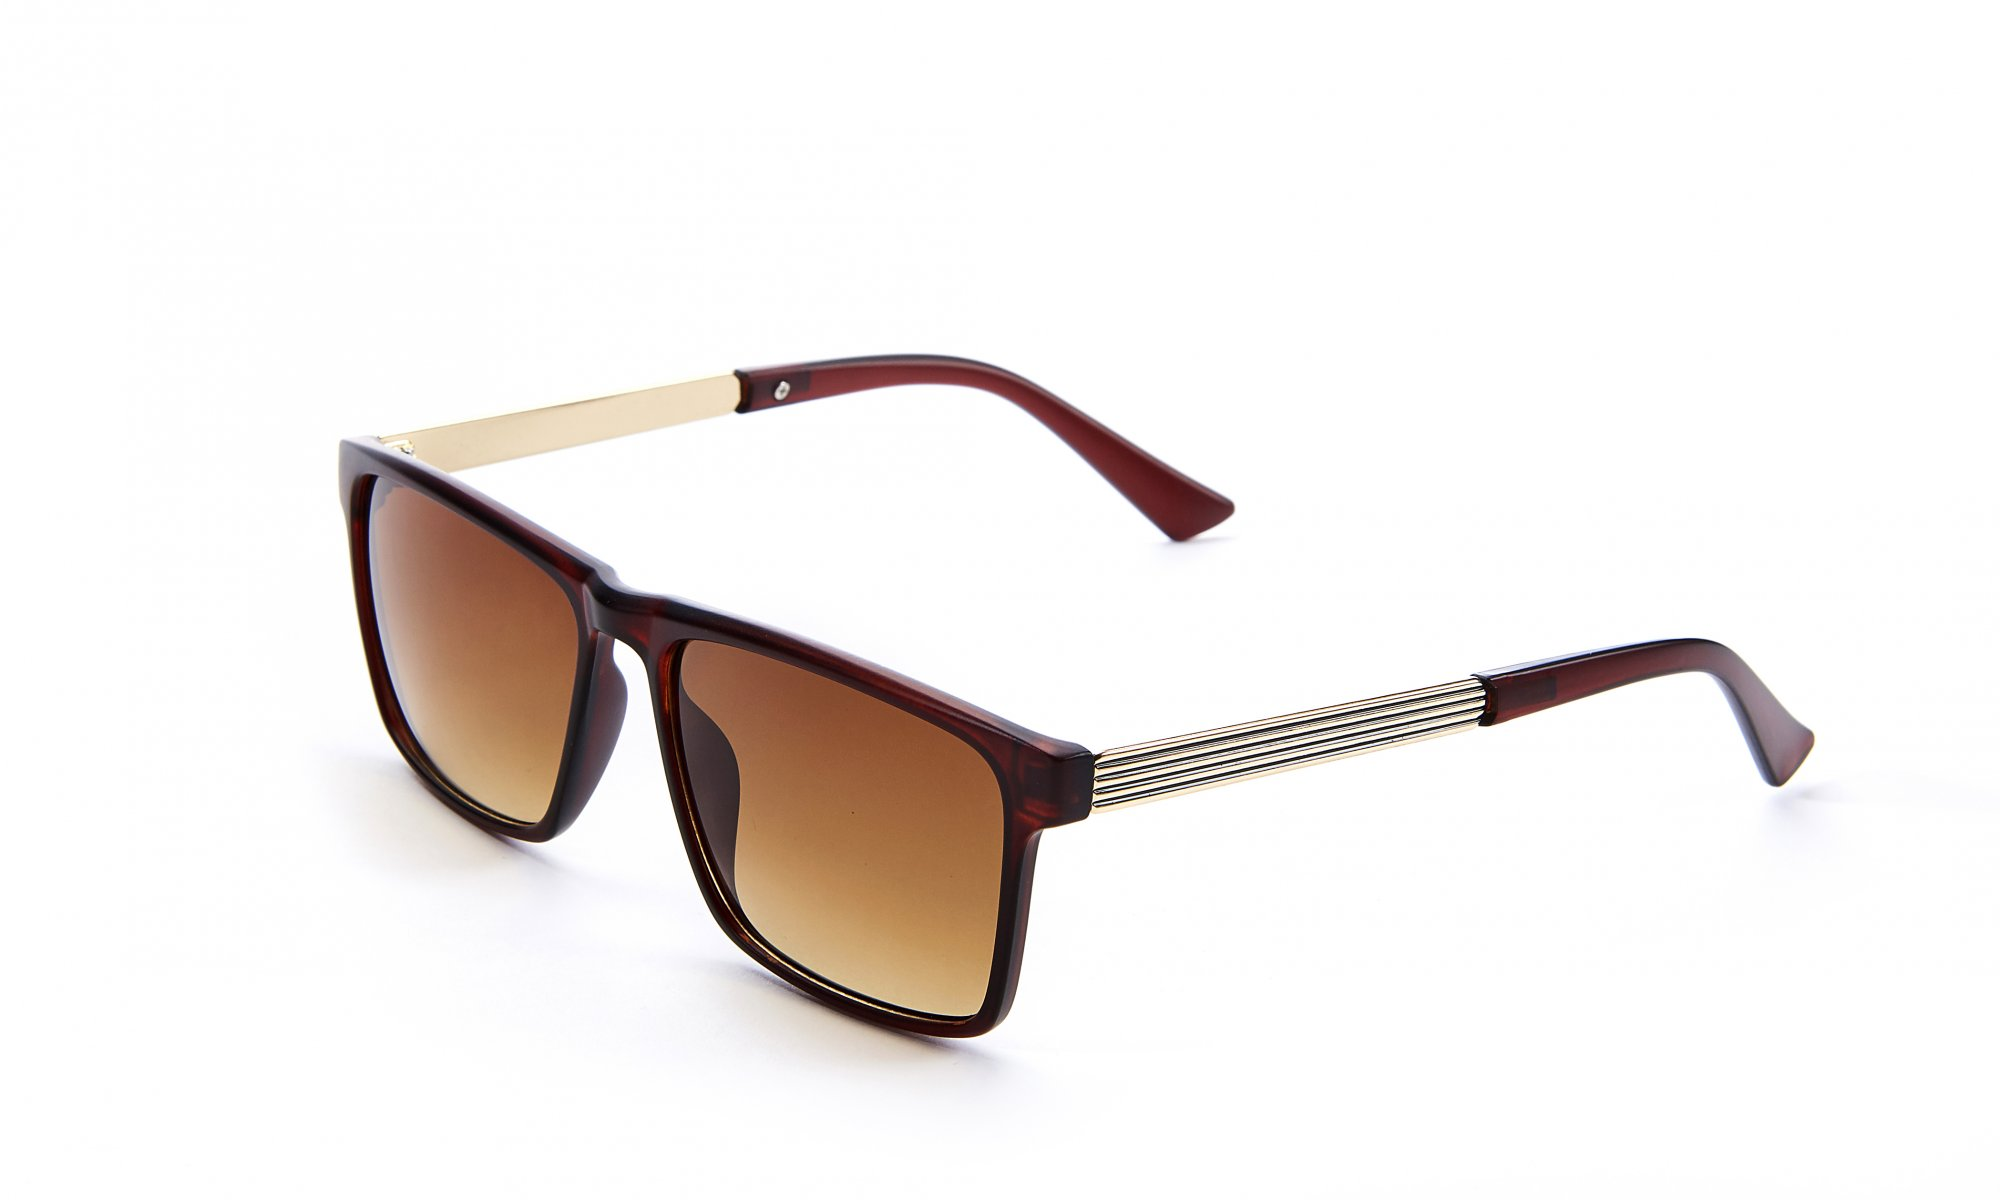 Brown/Gold Sunglasses with Case & Cloth